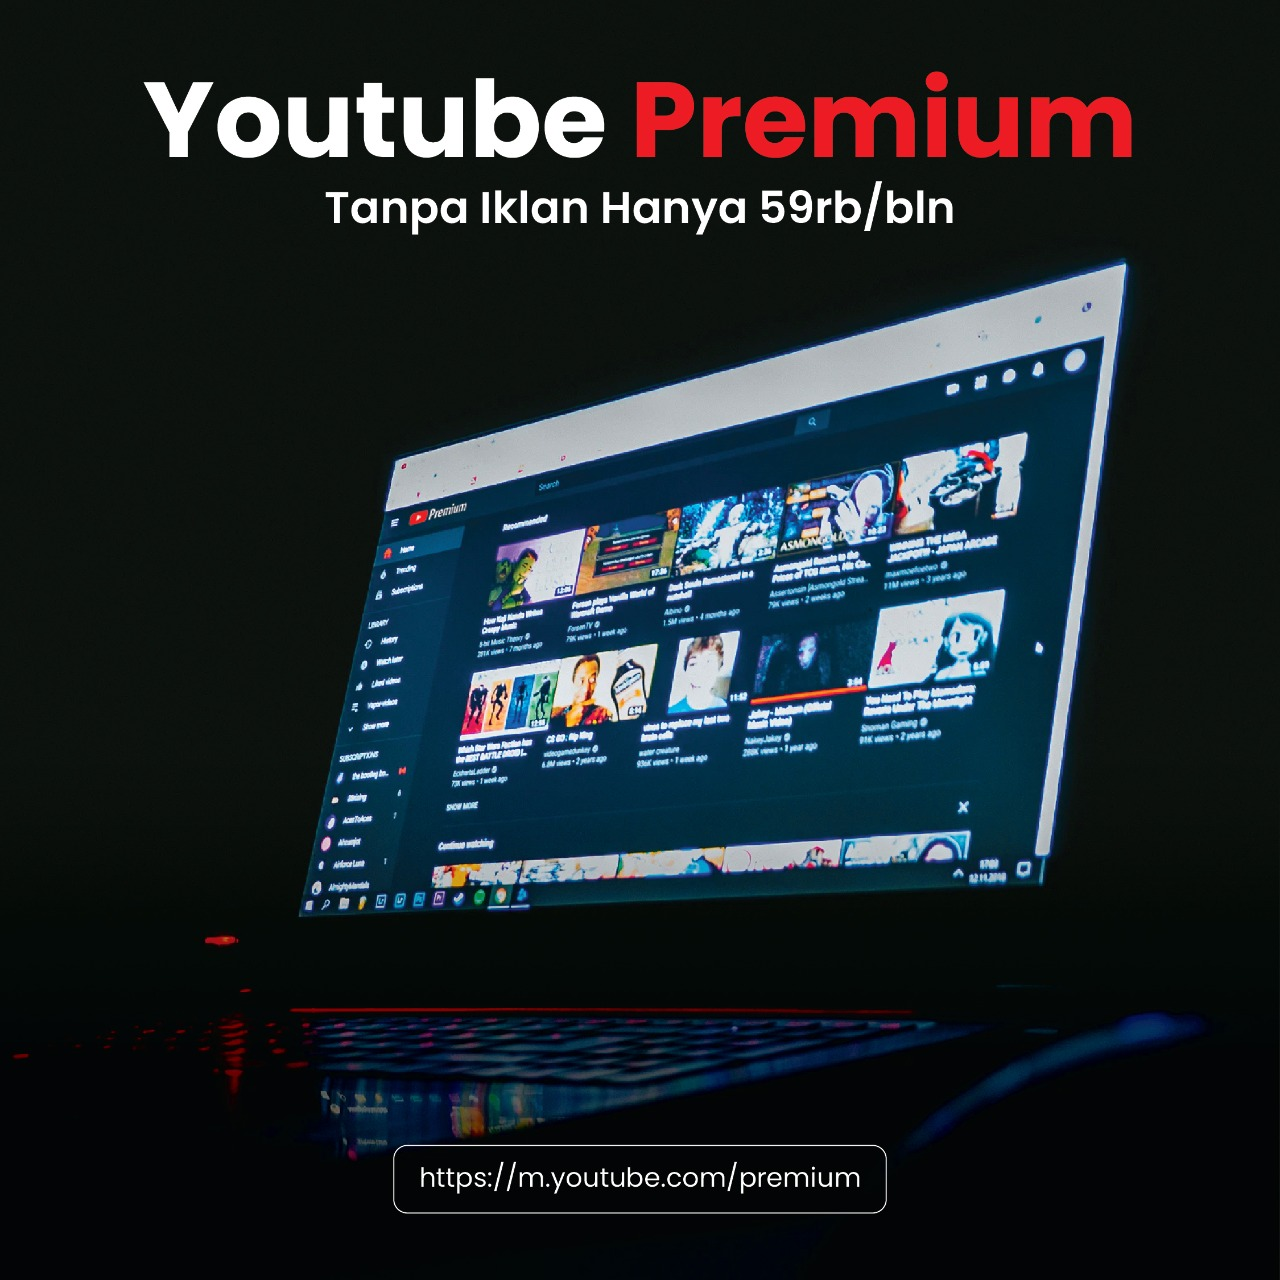 paket-internet-cepat-murah-product-Youtube-Premium-20201125145048.jpeg